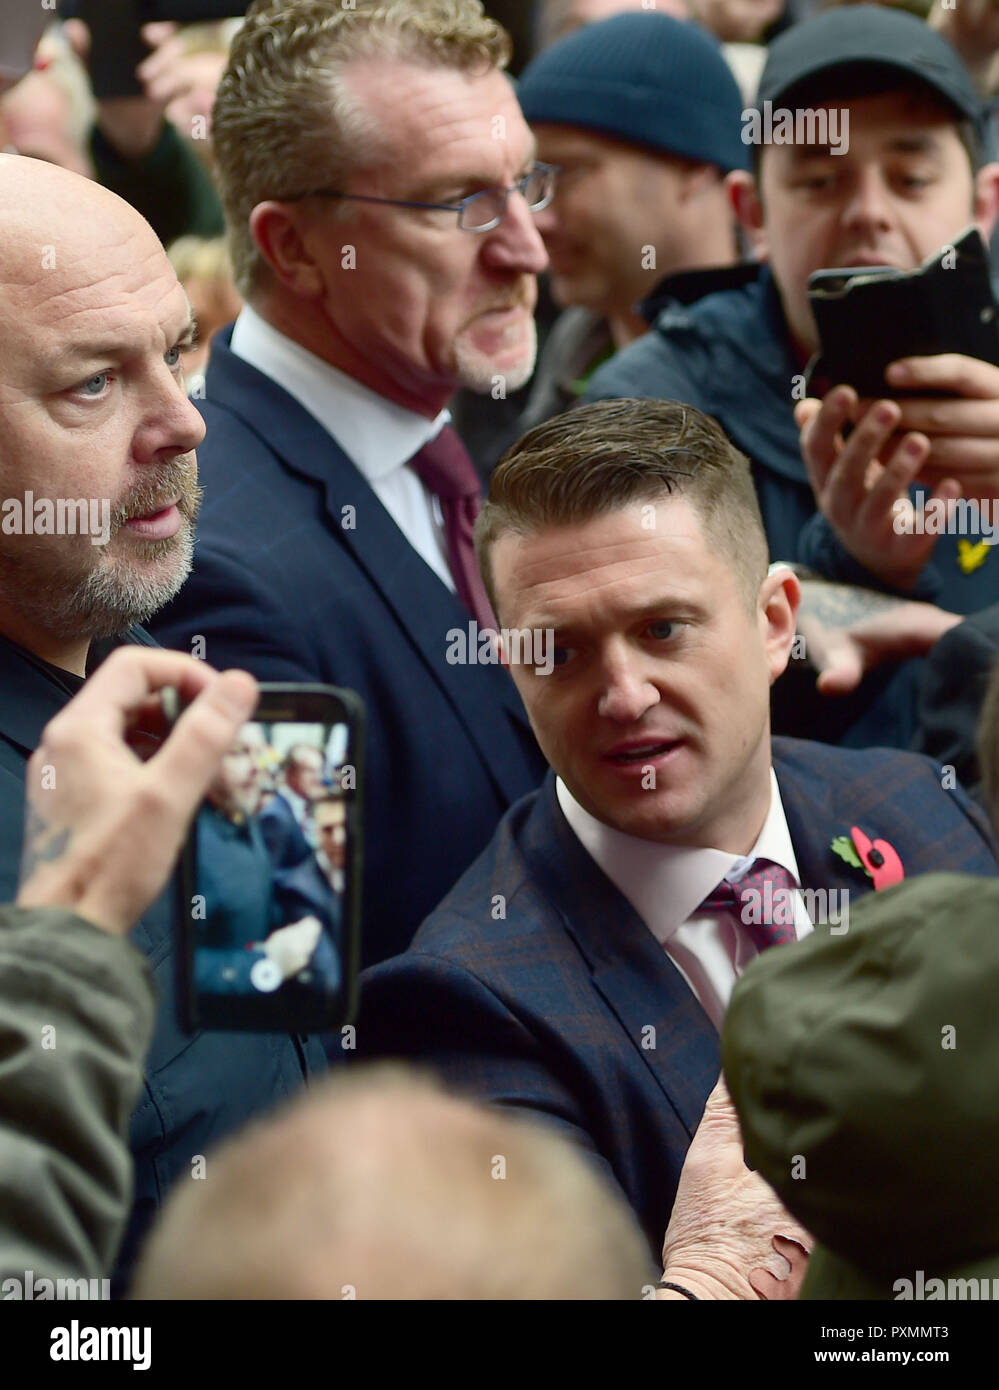 Former English Defence League (EDL) leader Tommy Robinson arrives at the Old Bailey where he is accused of contempt of court. - Stock Image